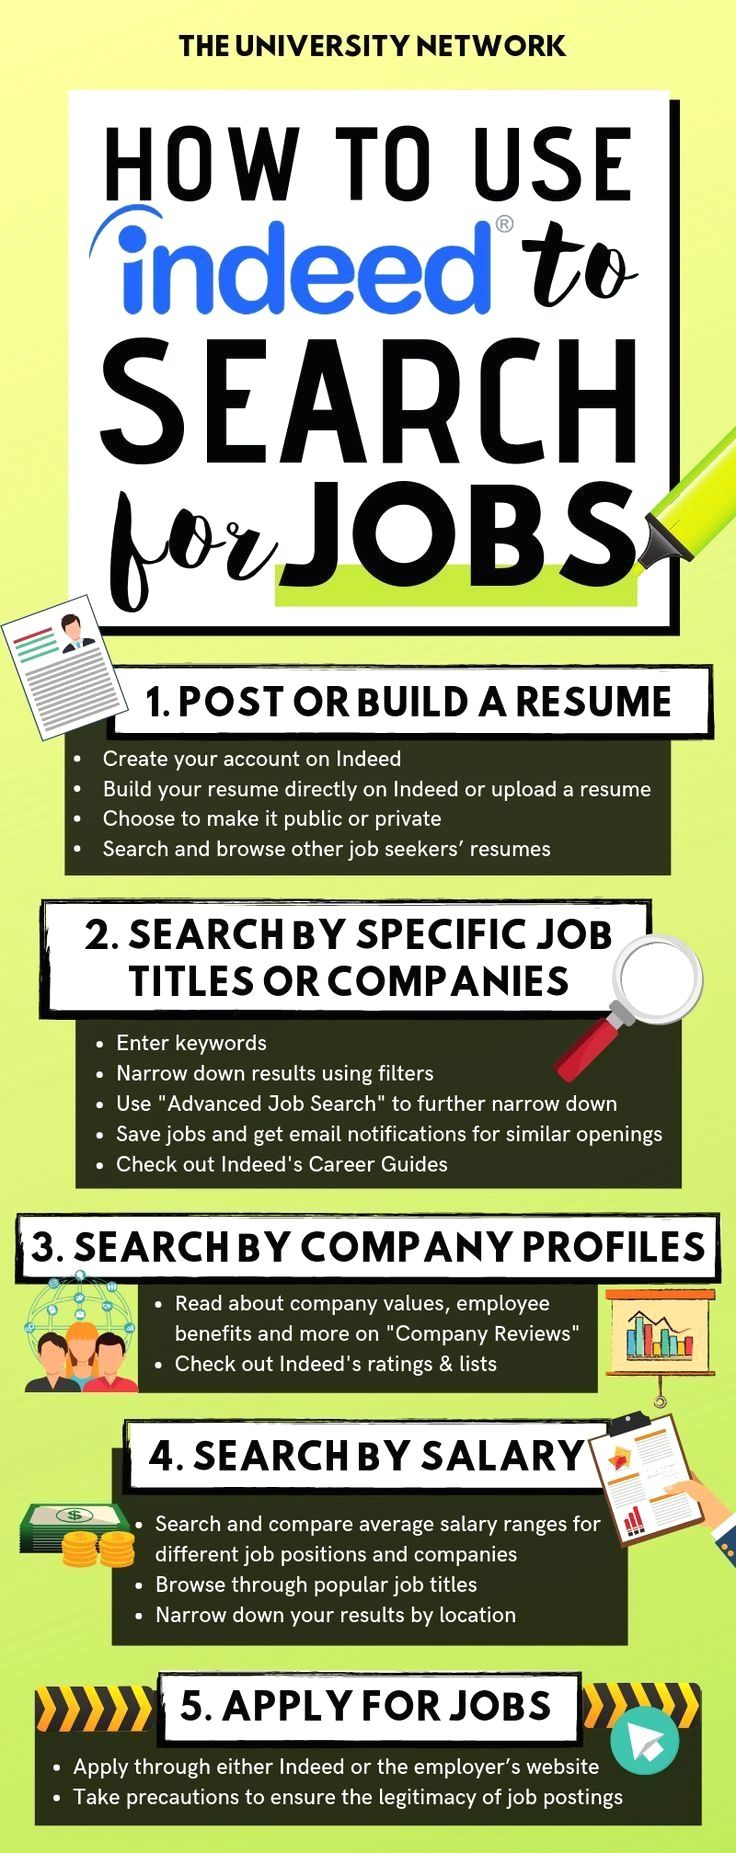 40+ Top resume tips 2019 Job search, Job search tips